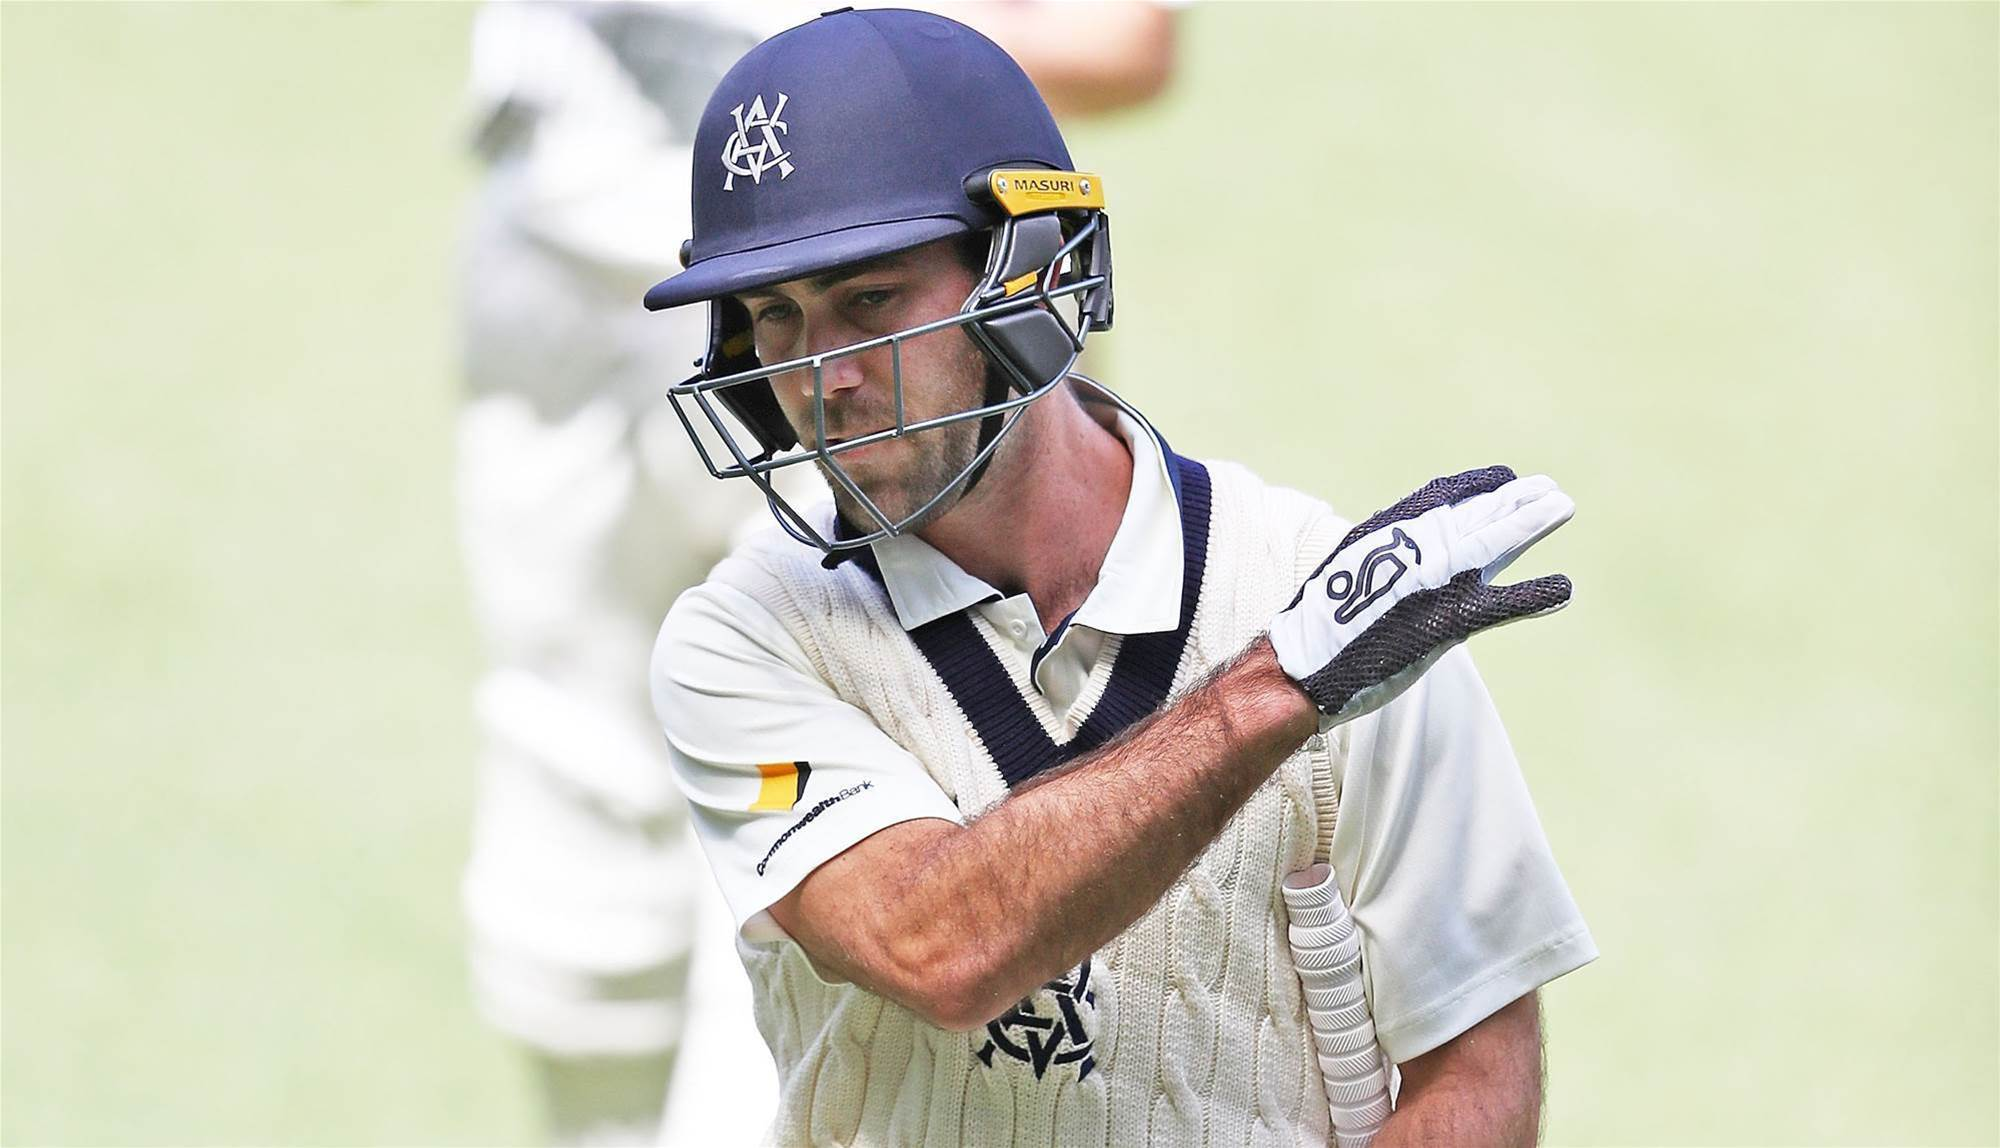 Maxwell 'threw away' chance of Ashes berth